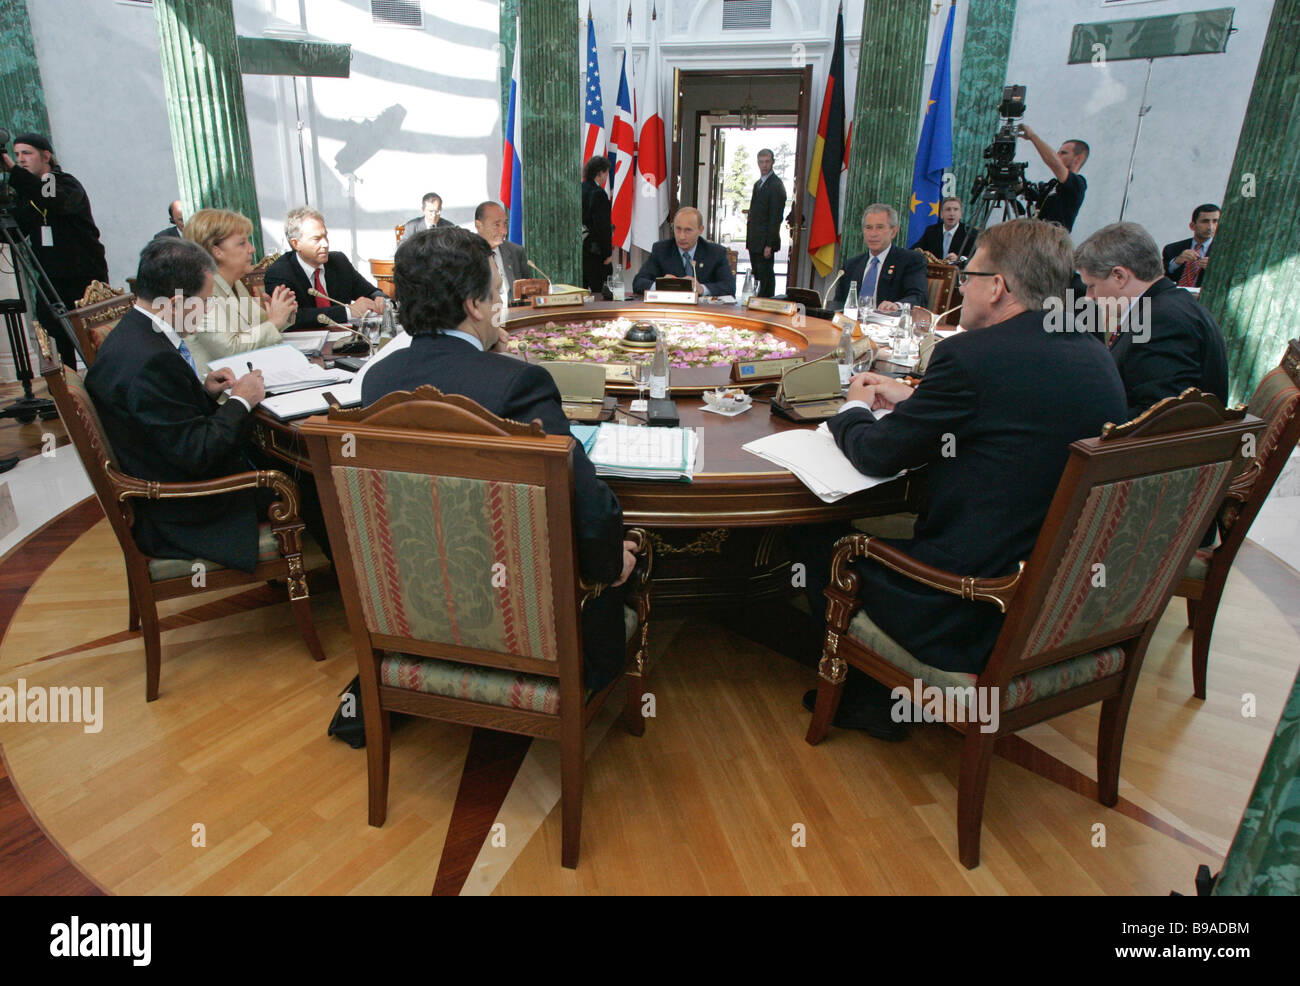 During the first working meeting of the G8 leaders - Stock Image